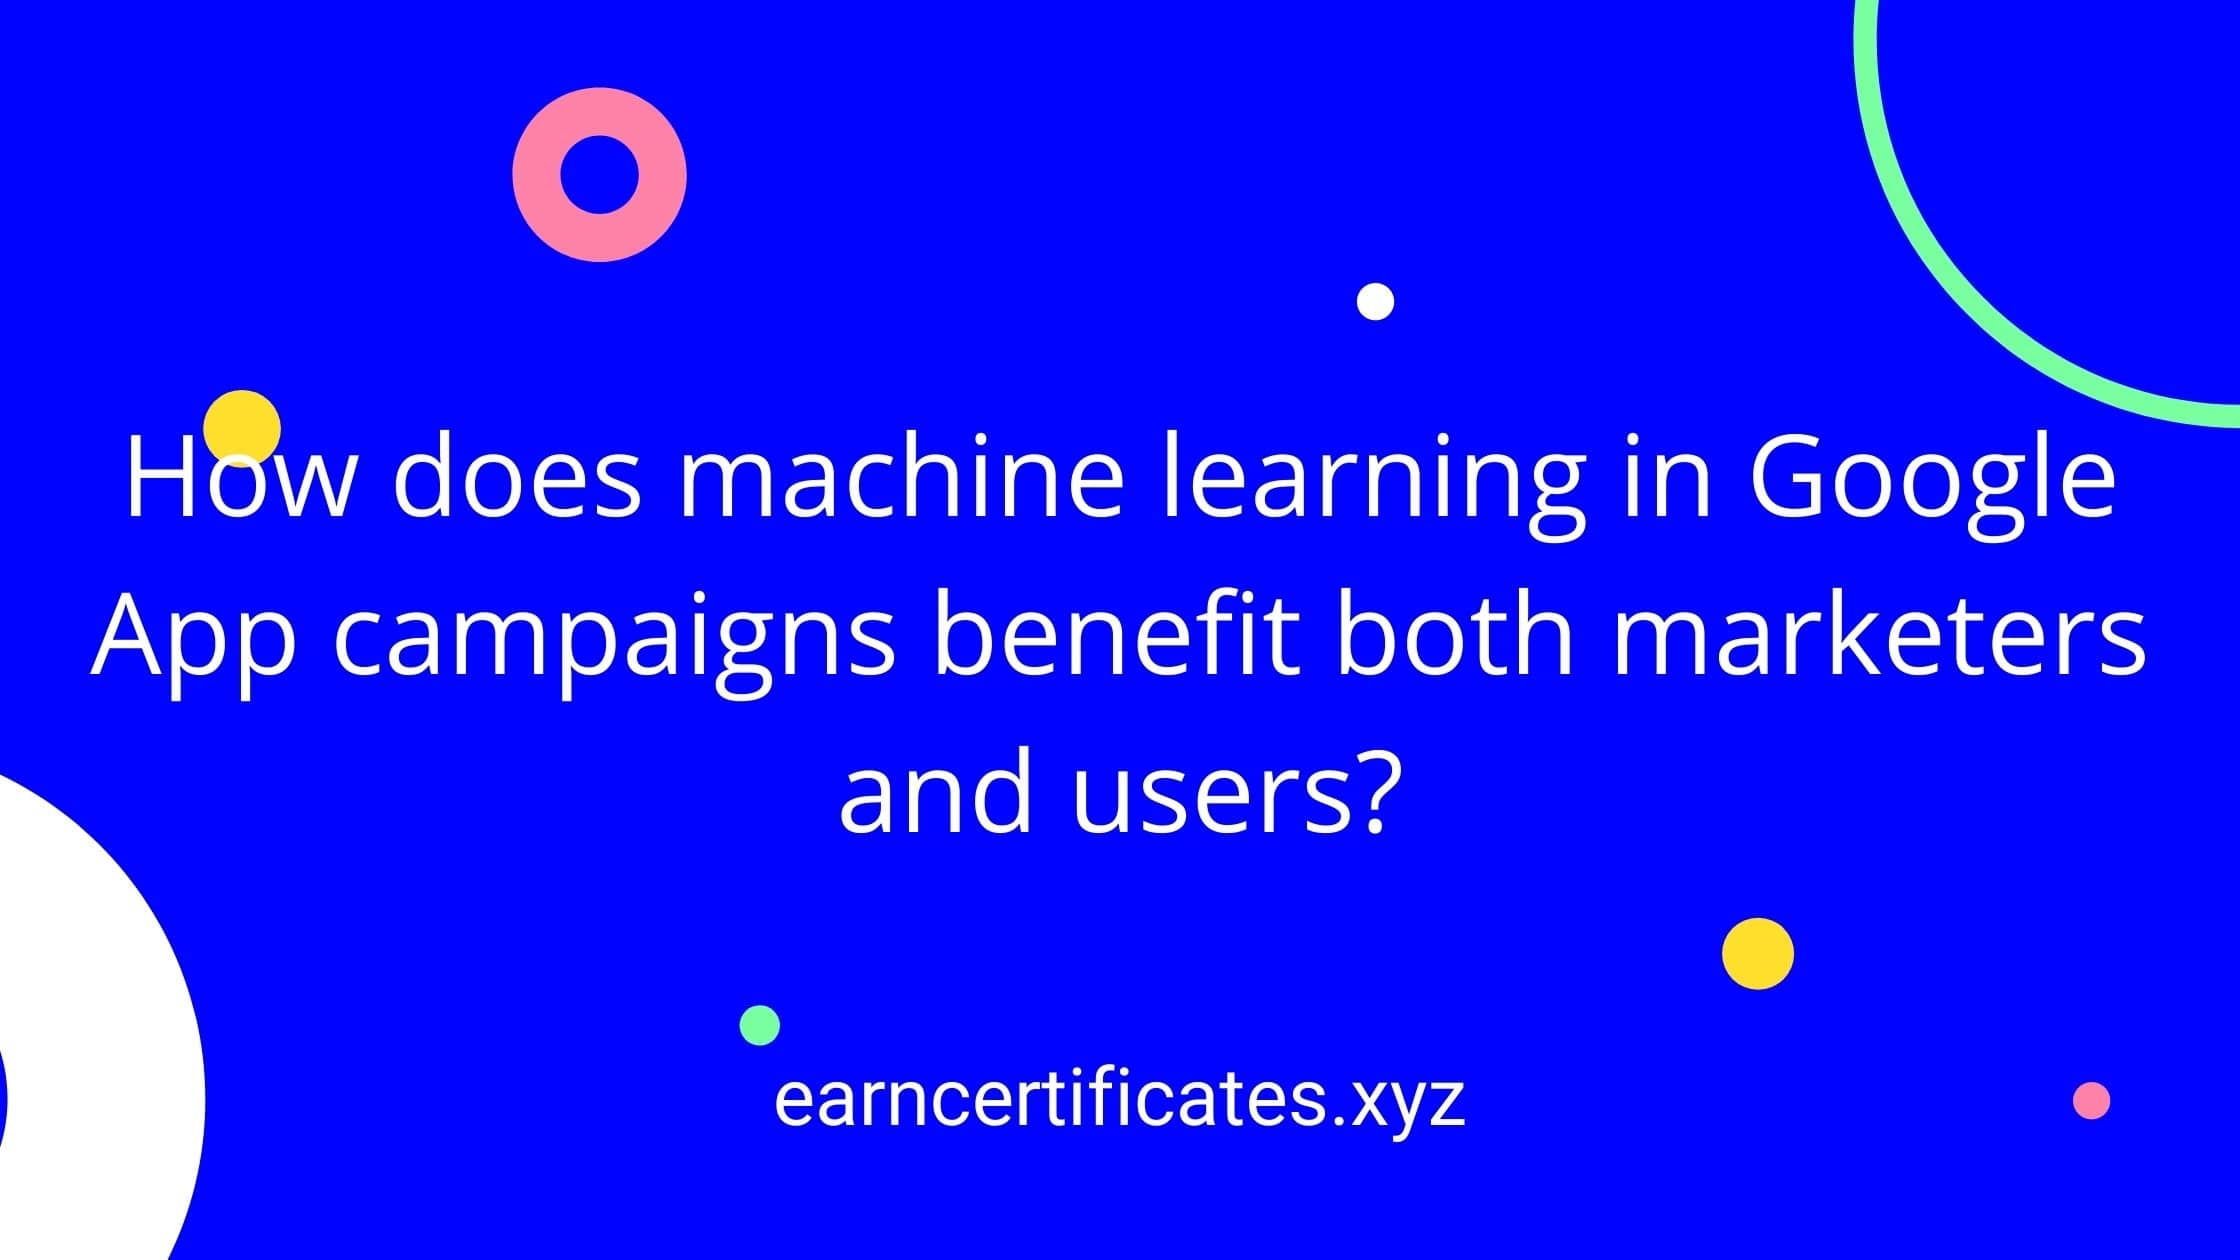 How does machine learning in Google App campaigns benefit both marketers and users?